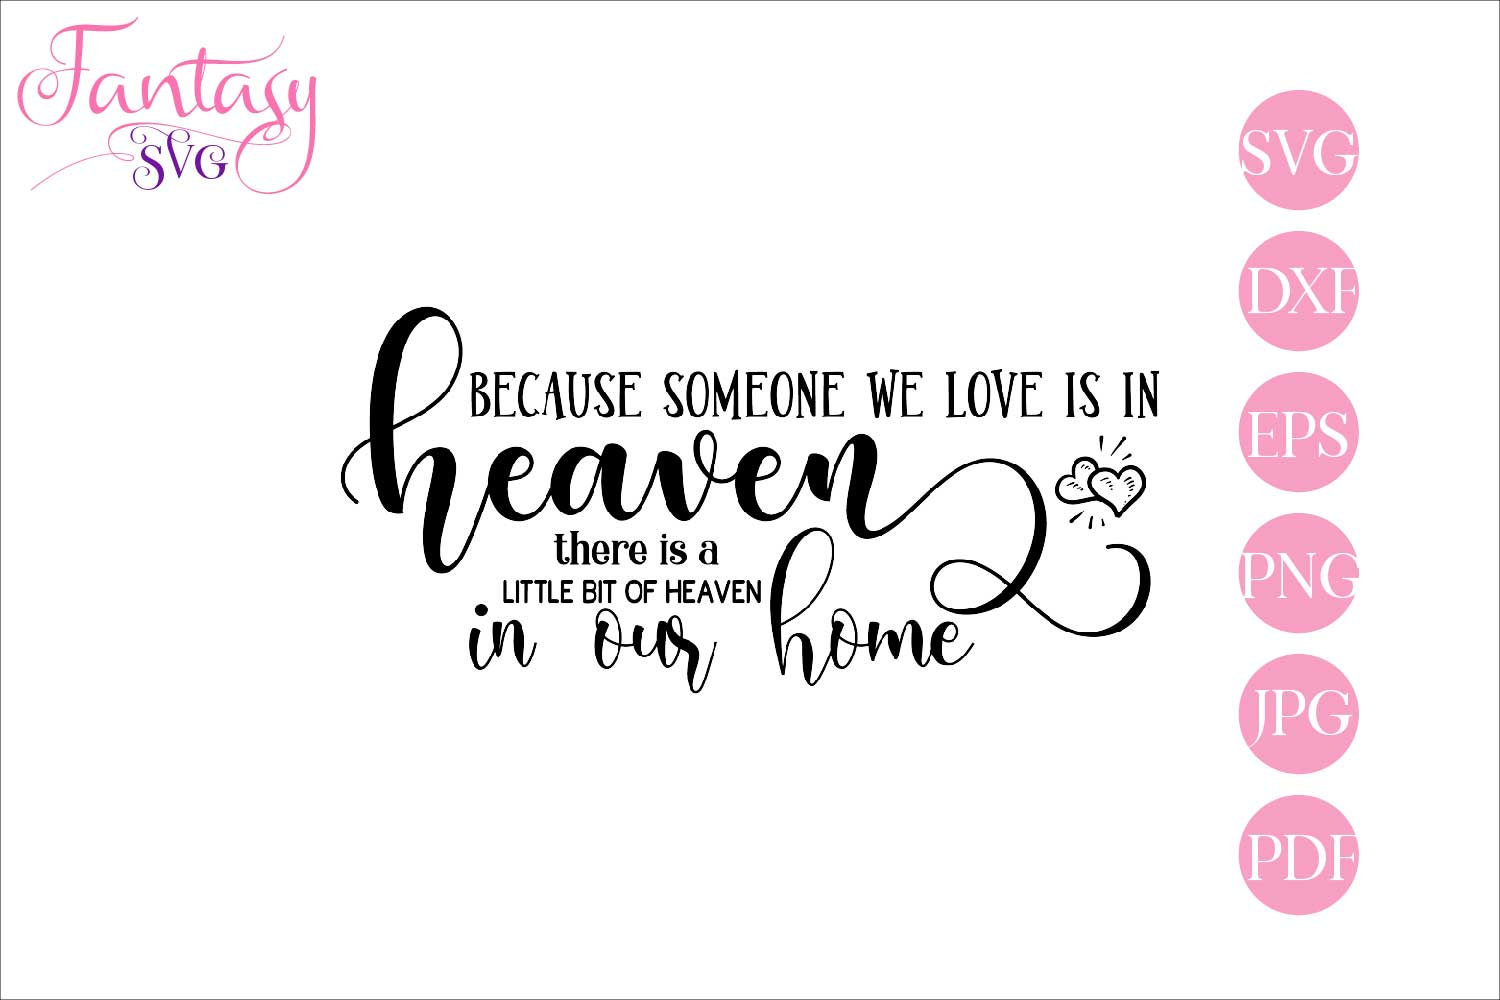 Download Free Because Someone We Love Is In Heaven Graphic By Fantasy Svg for Cricut Explore, Silhouette and other cutting machines.